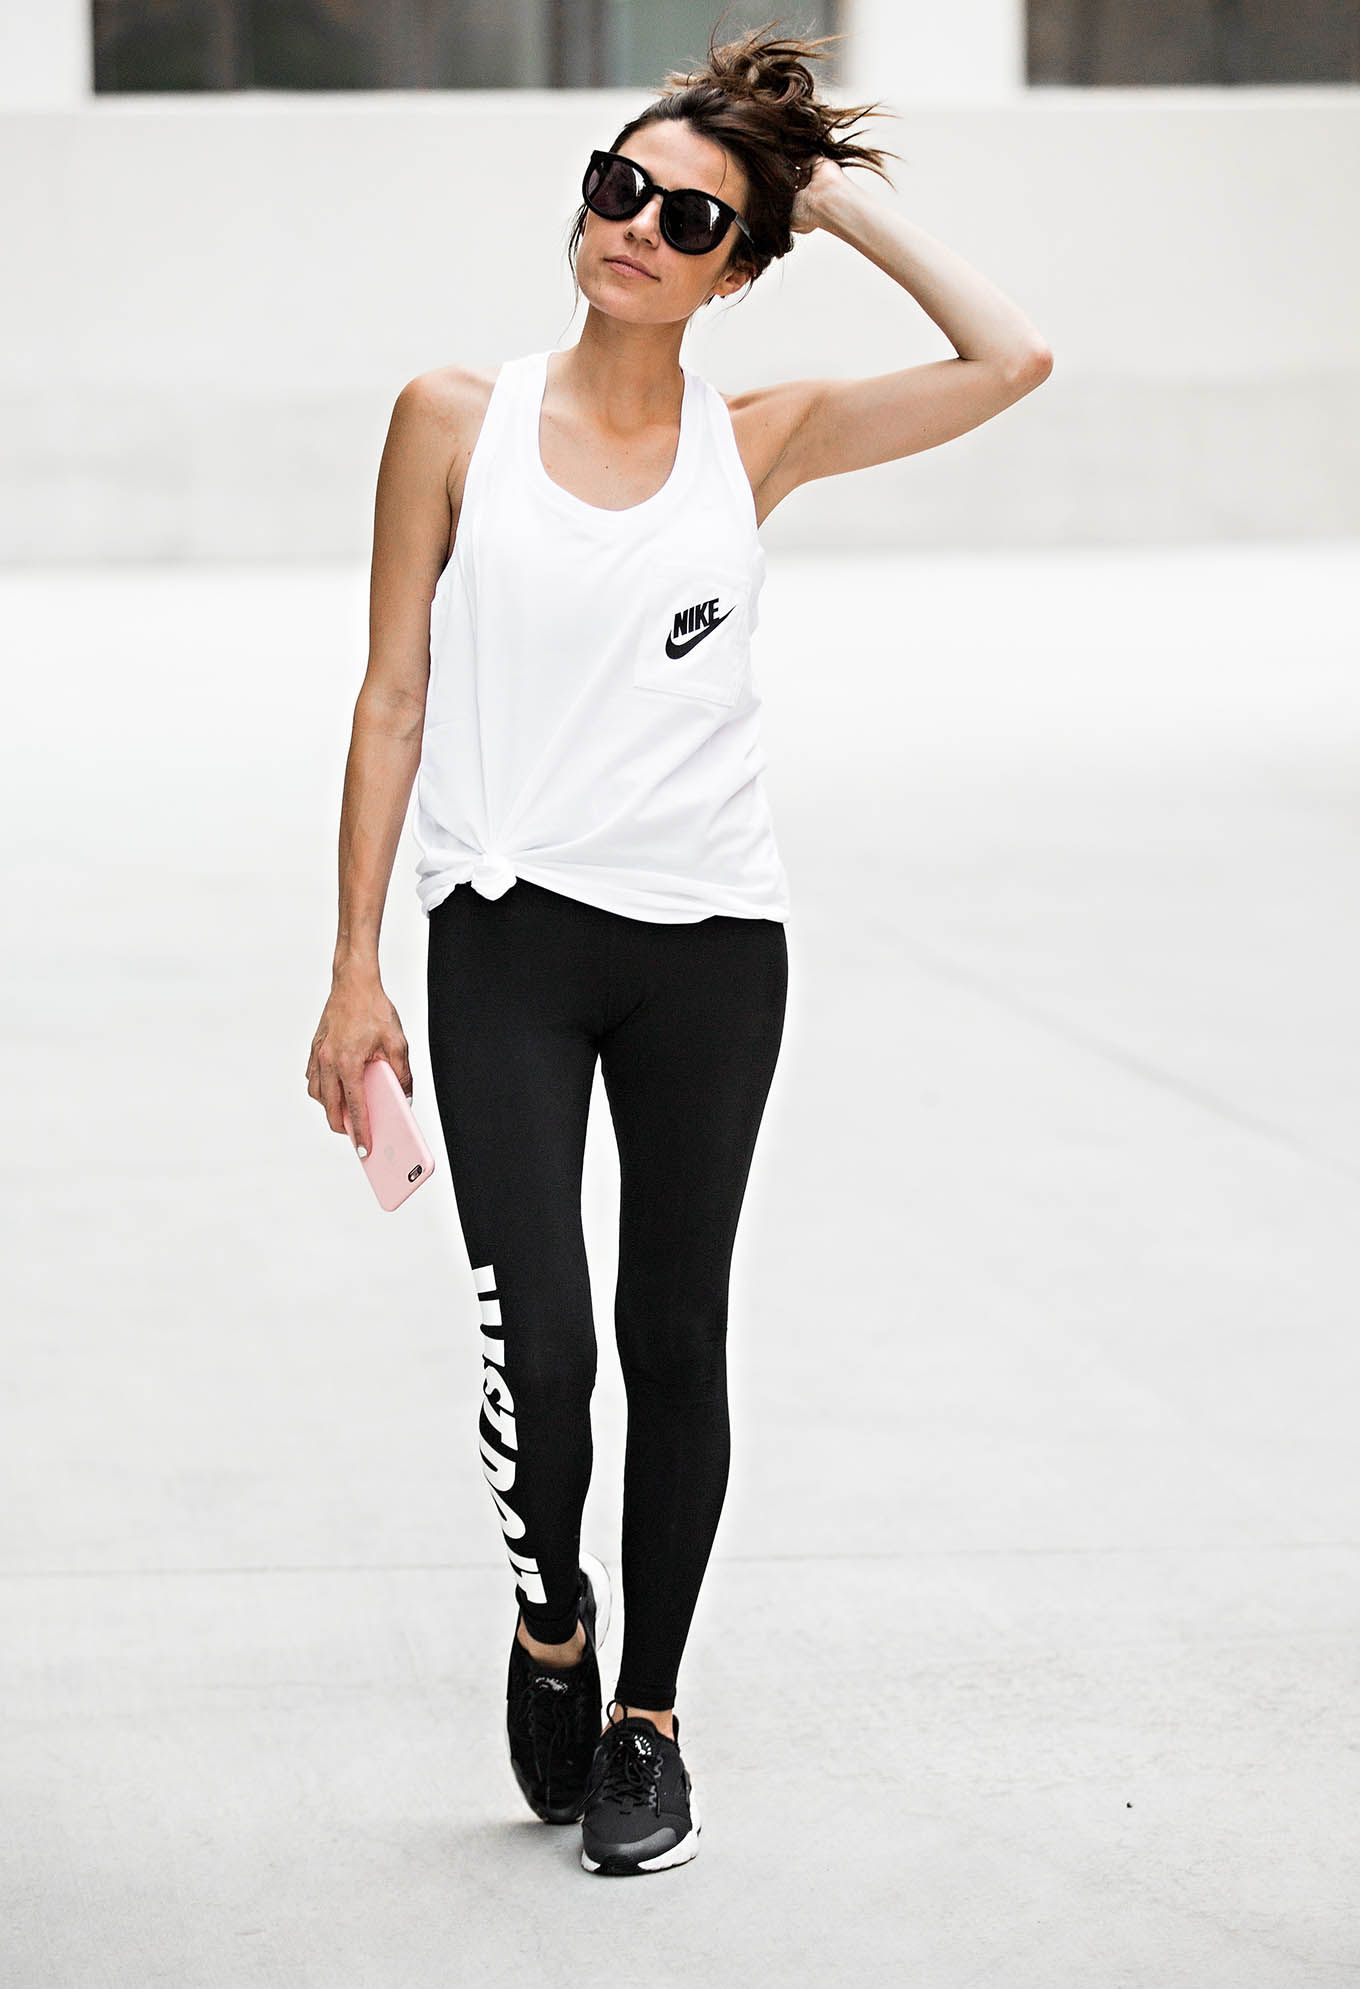 activewear street style ideas to inspire your next post-workout